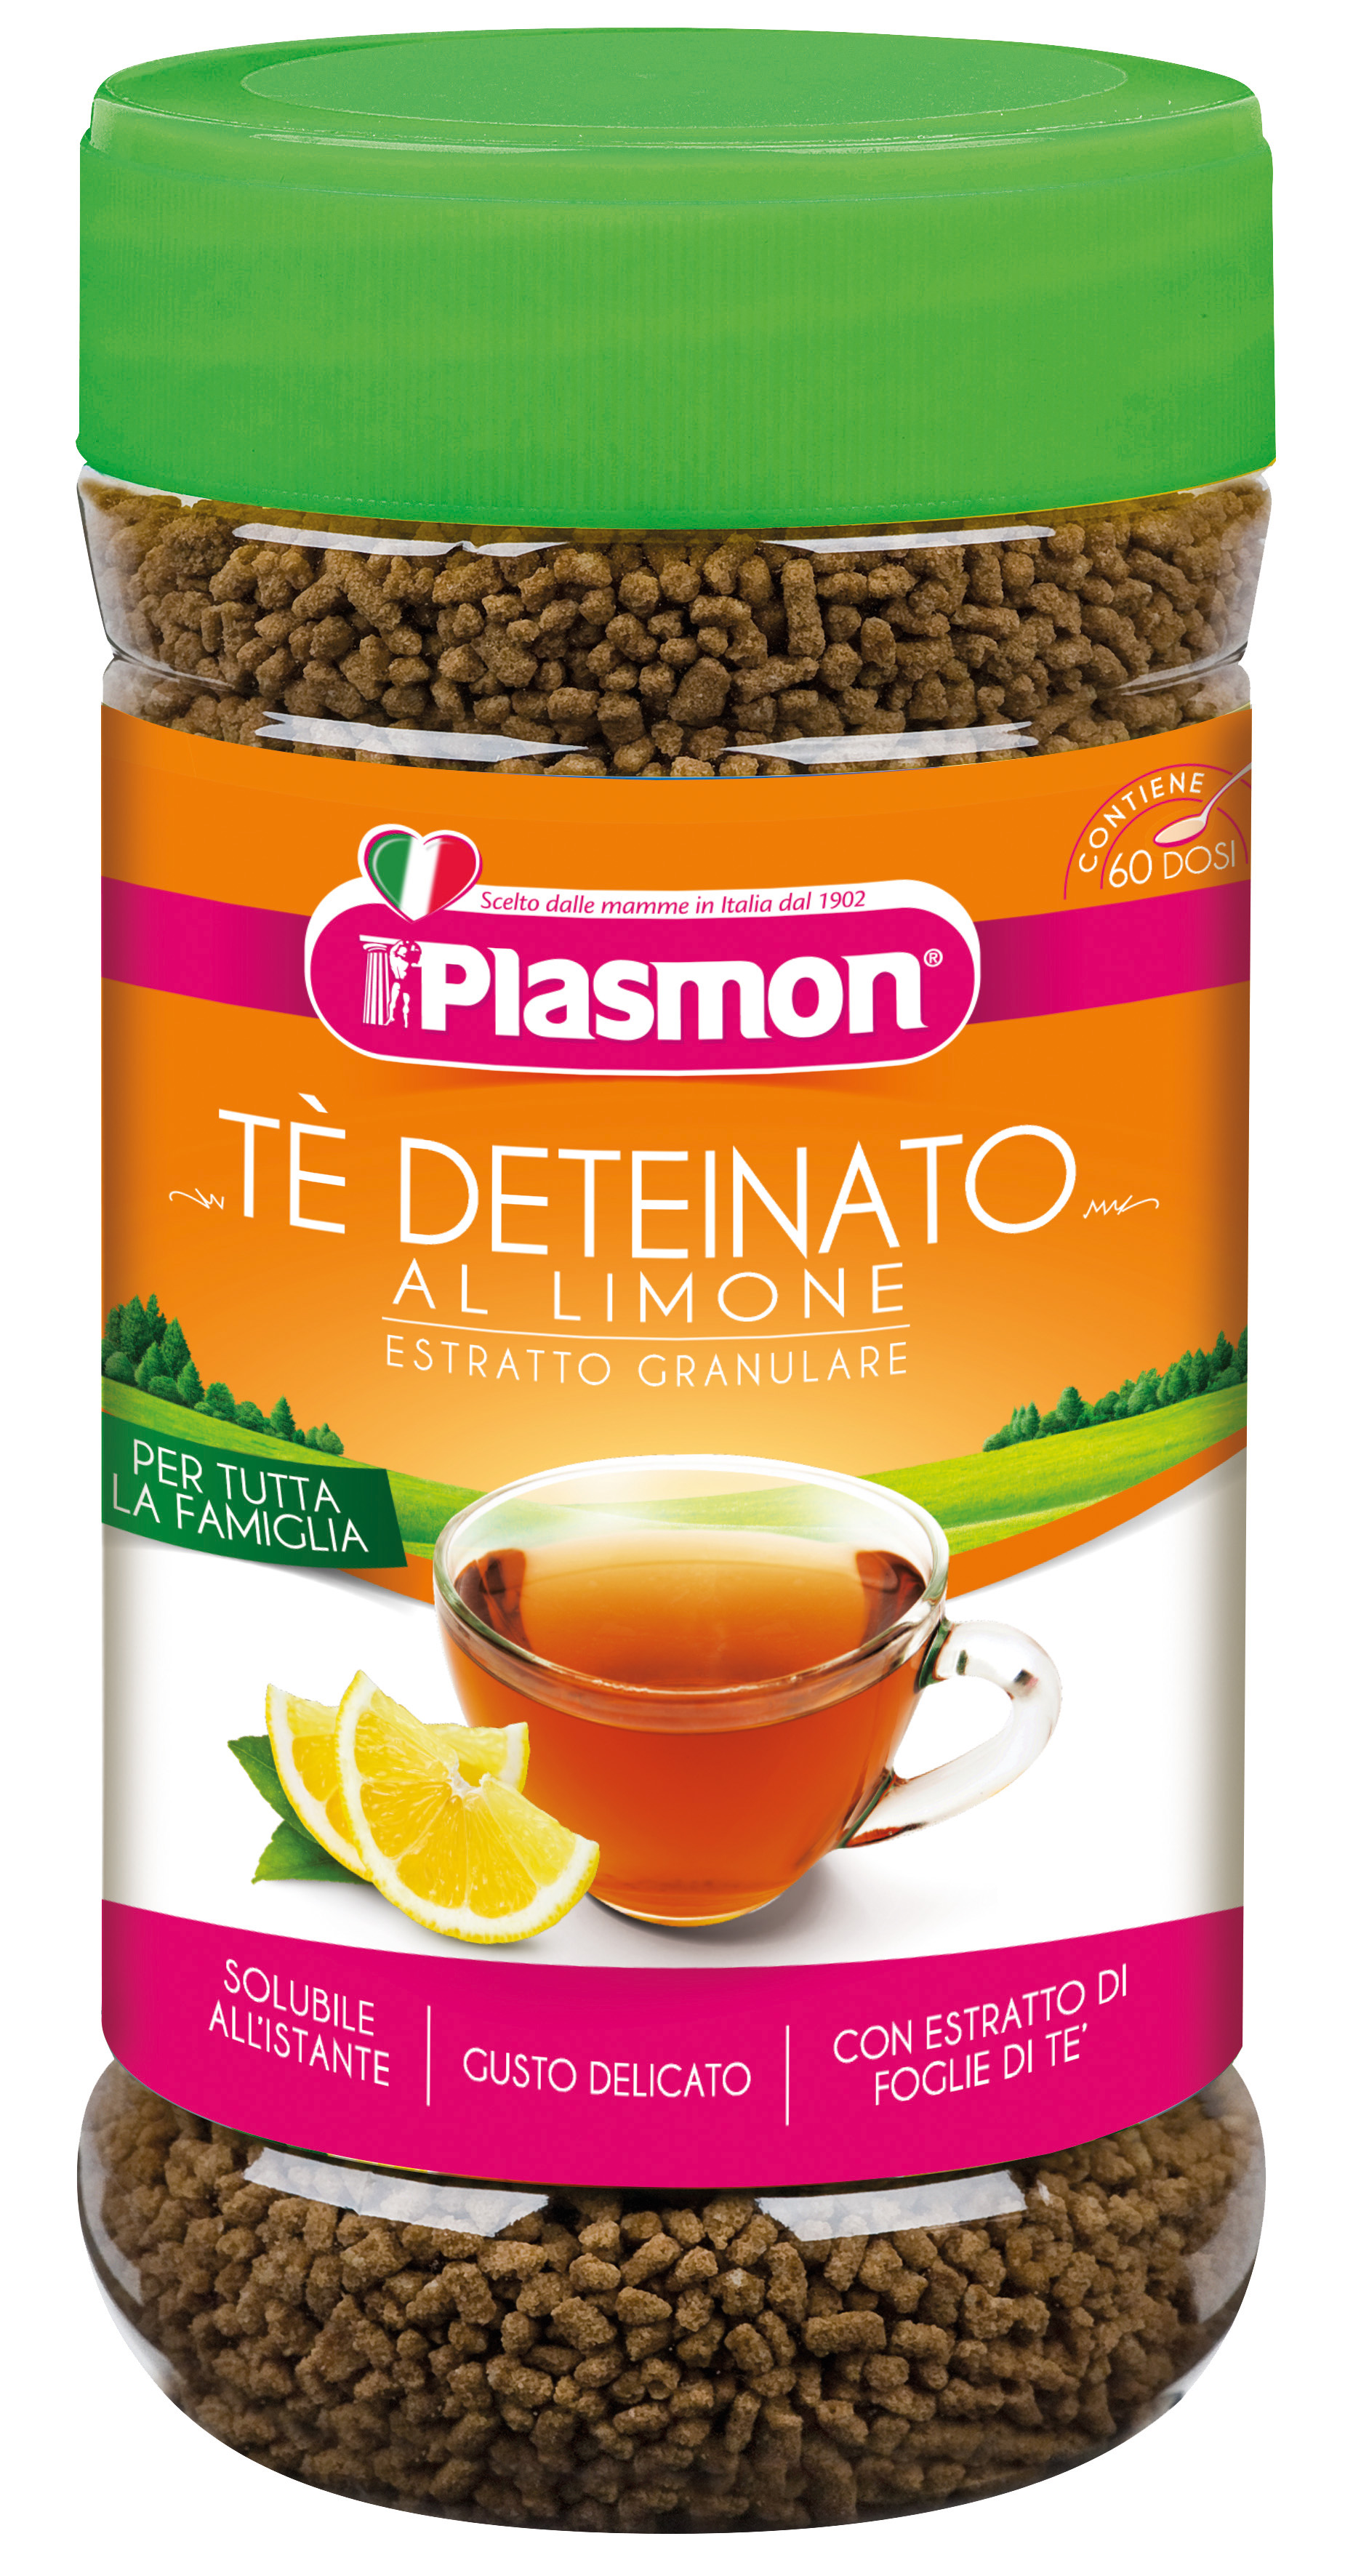 Decaffeinated Lemon tea - granular extract